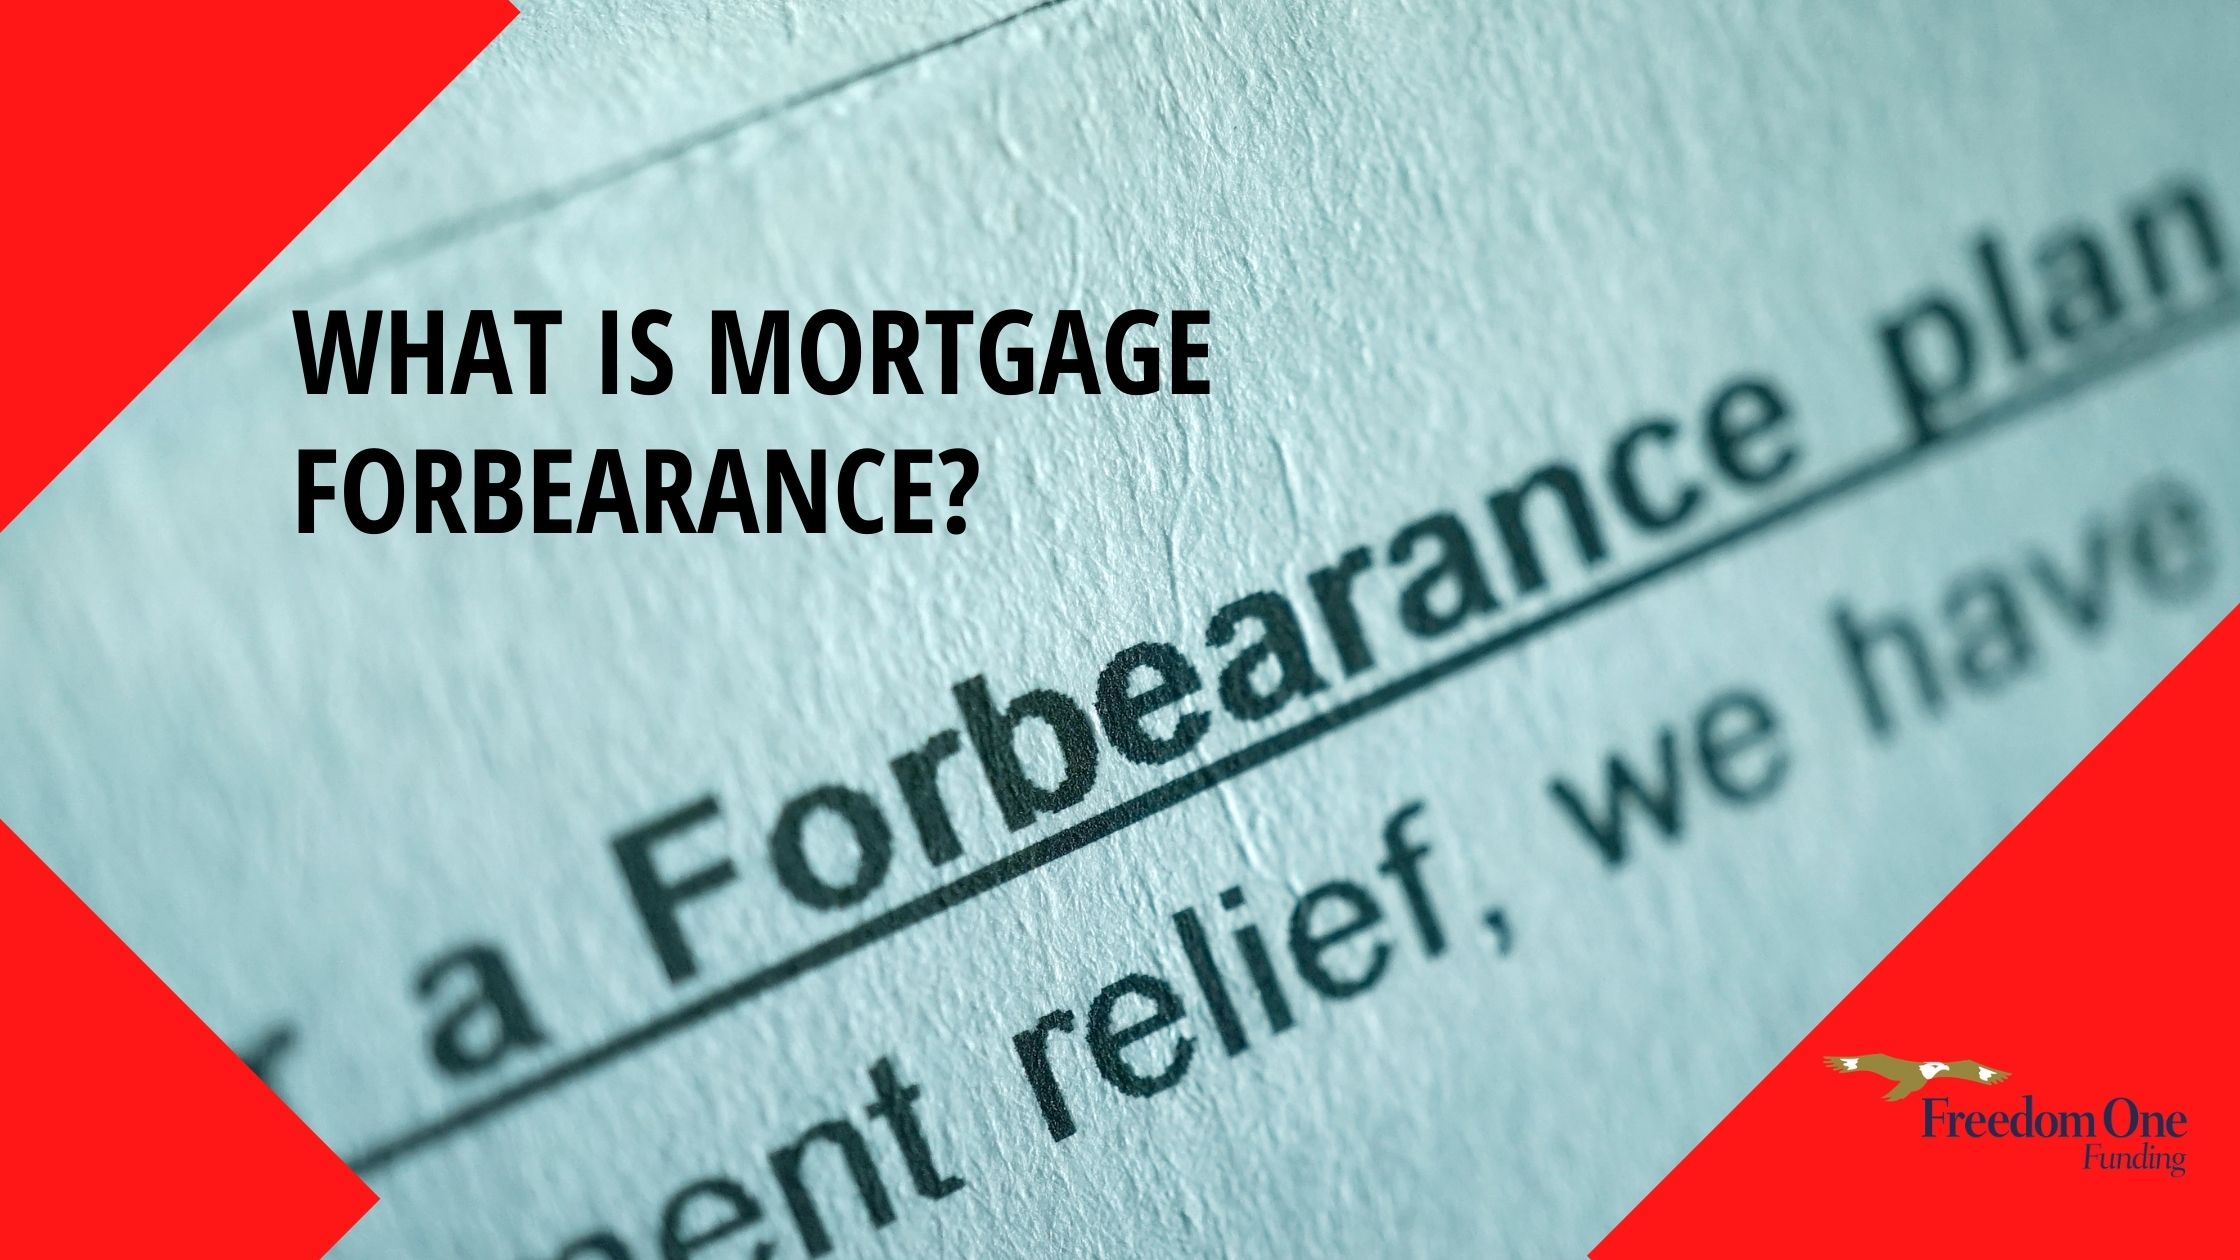 What is Mortgage Forbearance?